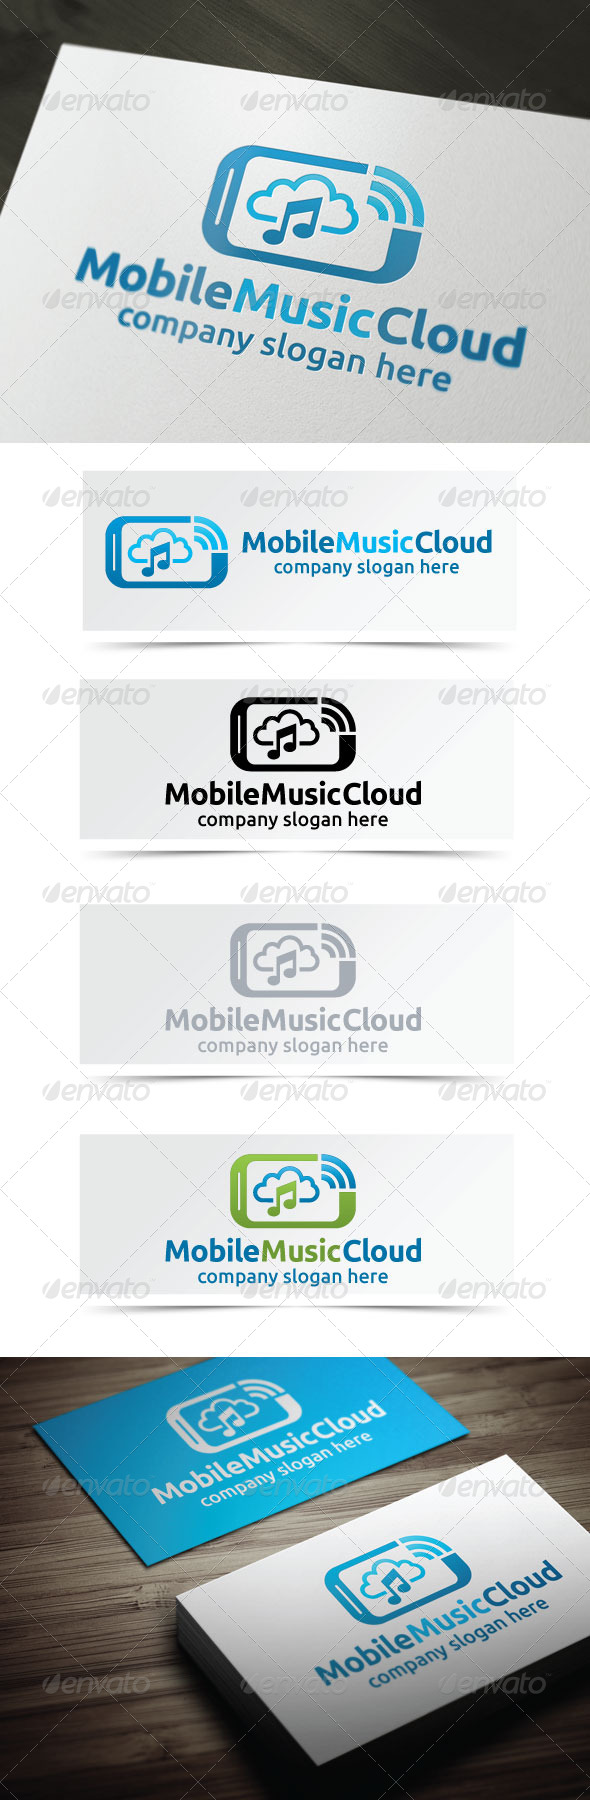 GraphicRiver Mobile Music Cloud 4411725